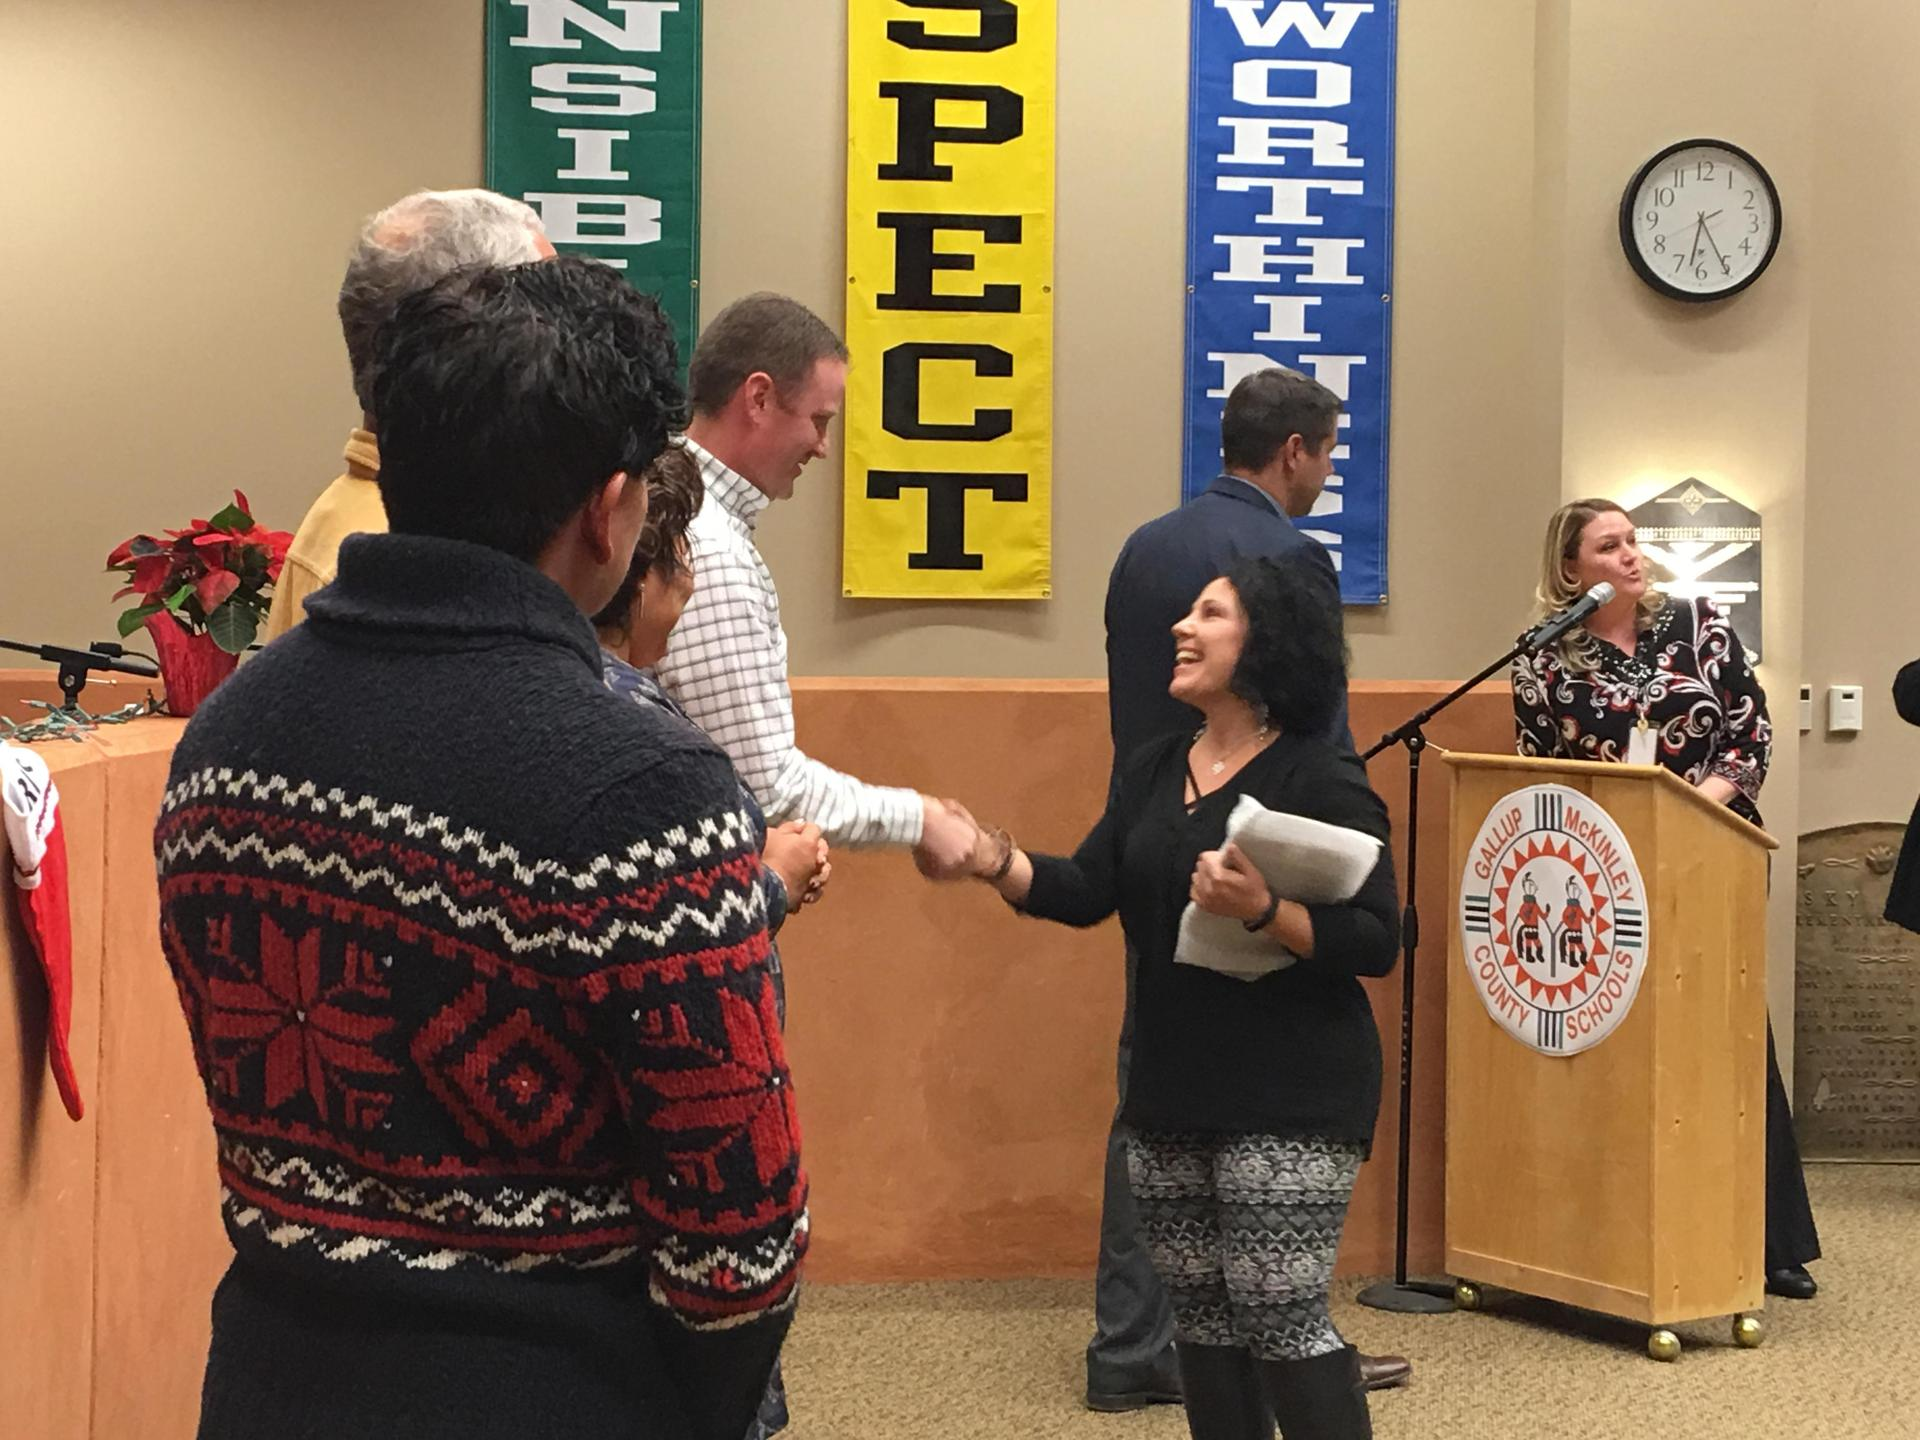 Teacher shaking hands with Board Member